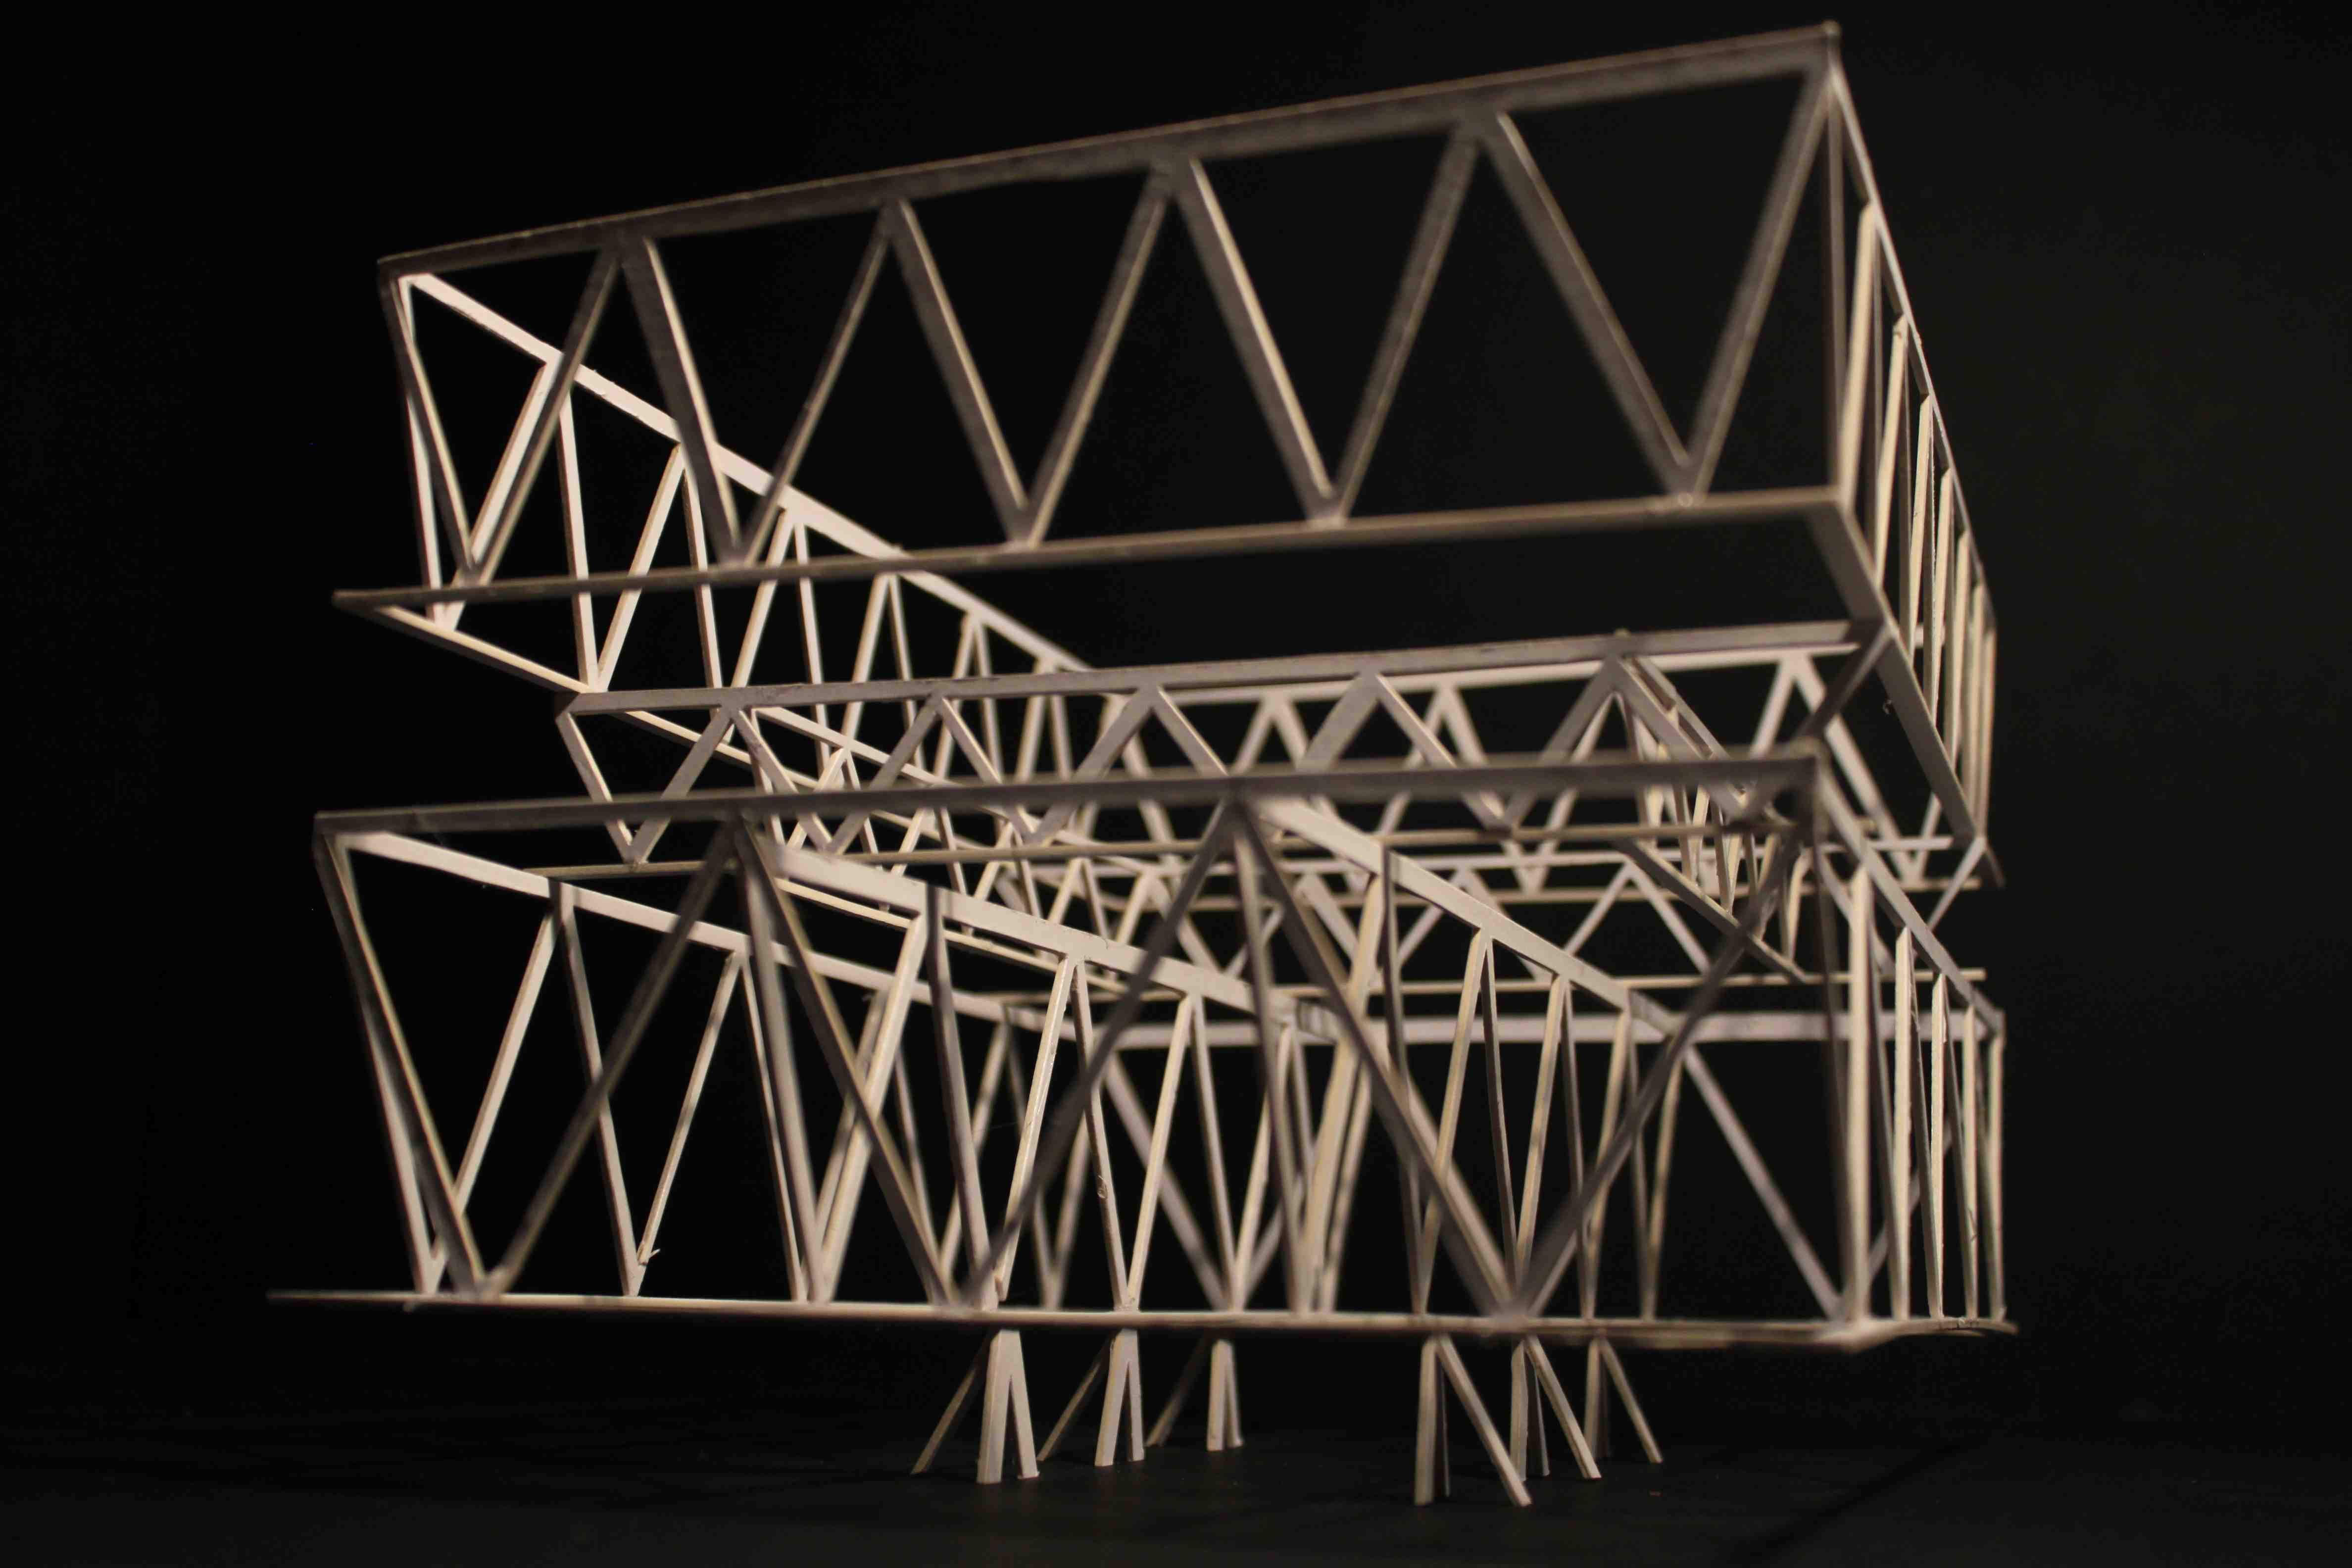 Leutshenbach School, Zurich. Technology case study model exploring the structure made up of three layers of trusses and the ground floor supports